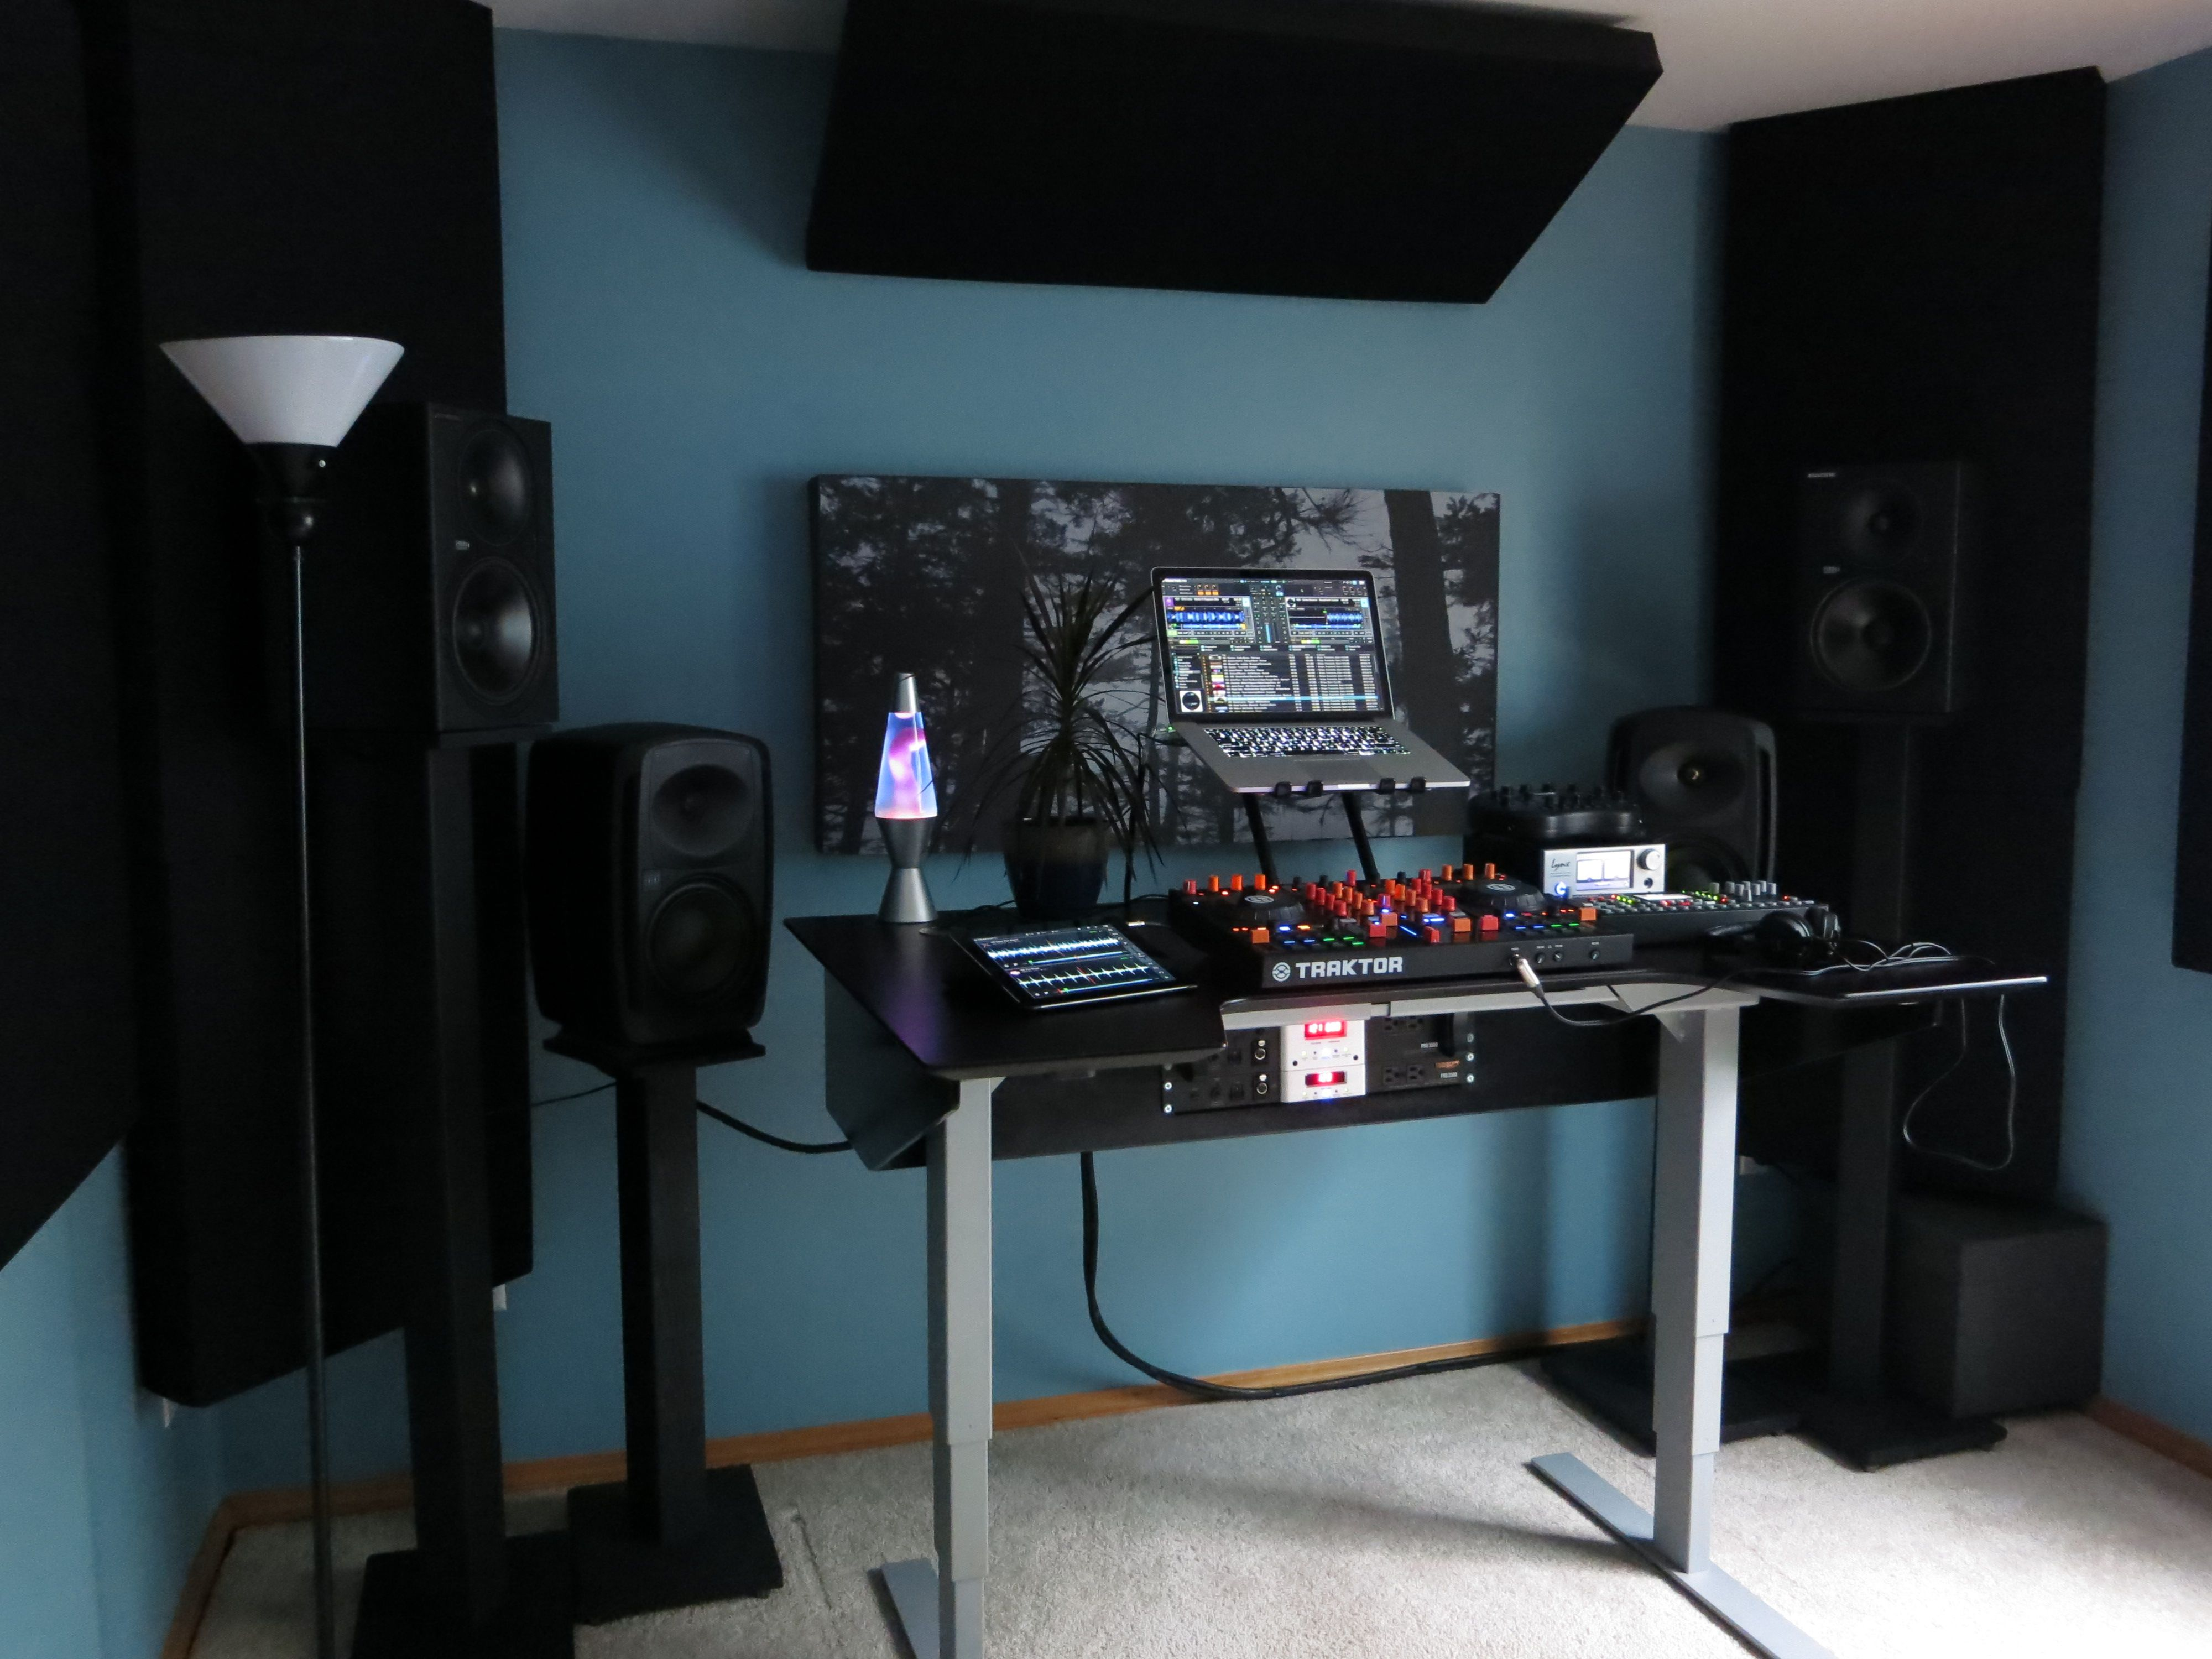 dj setup transformer traktor table tarekith dj pinterest dj setup dj and dj booth. Black Bedroom Furniture Sets. Home Design Ideas